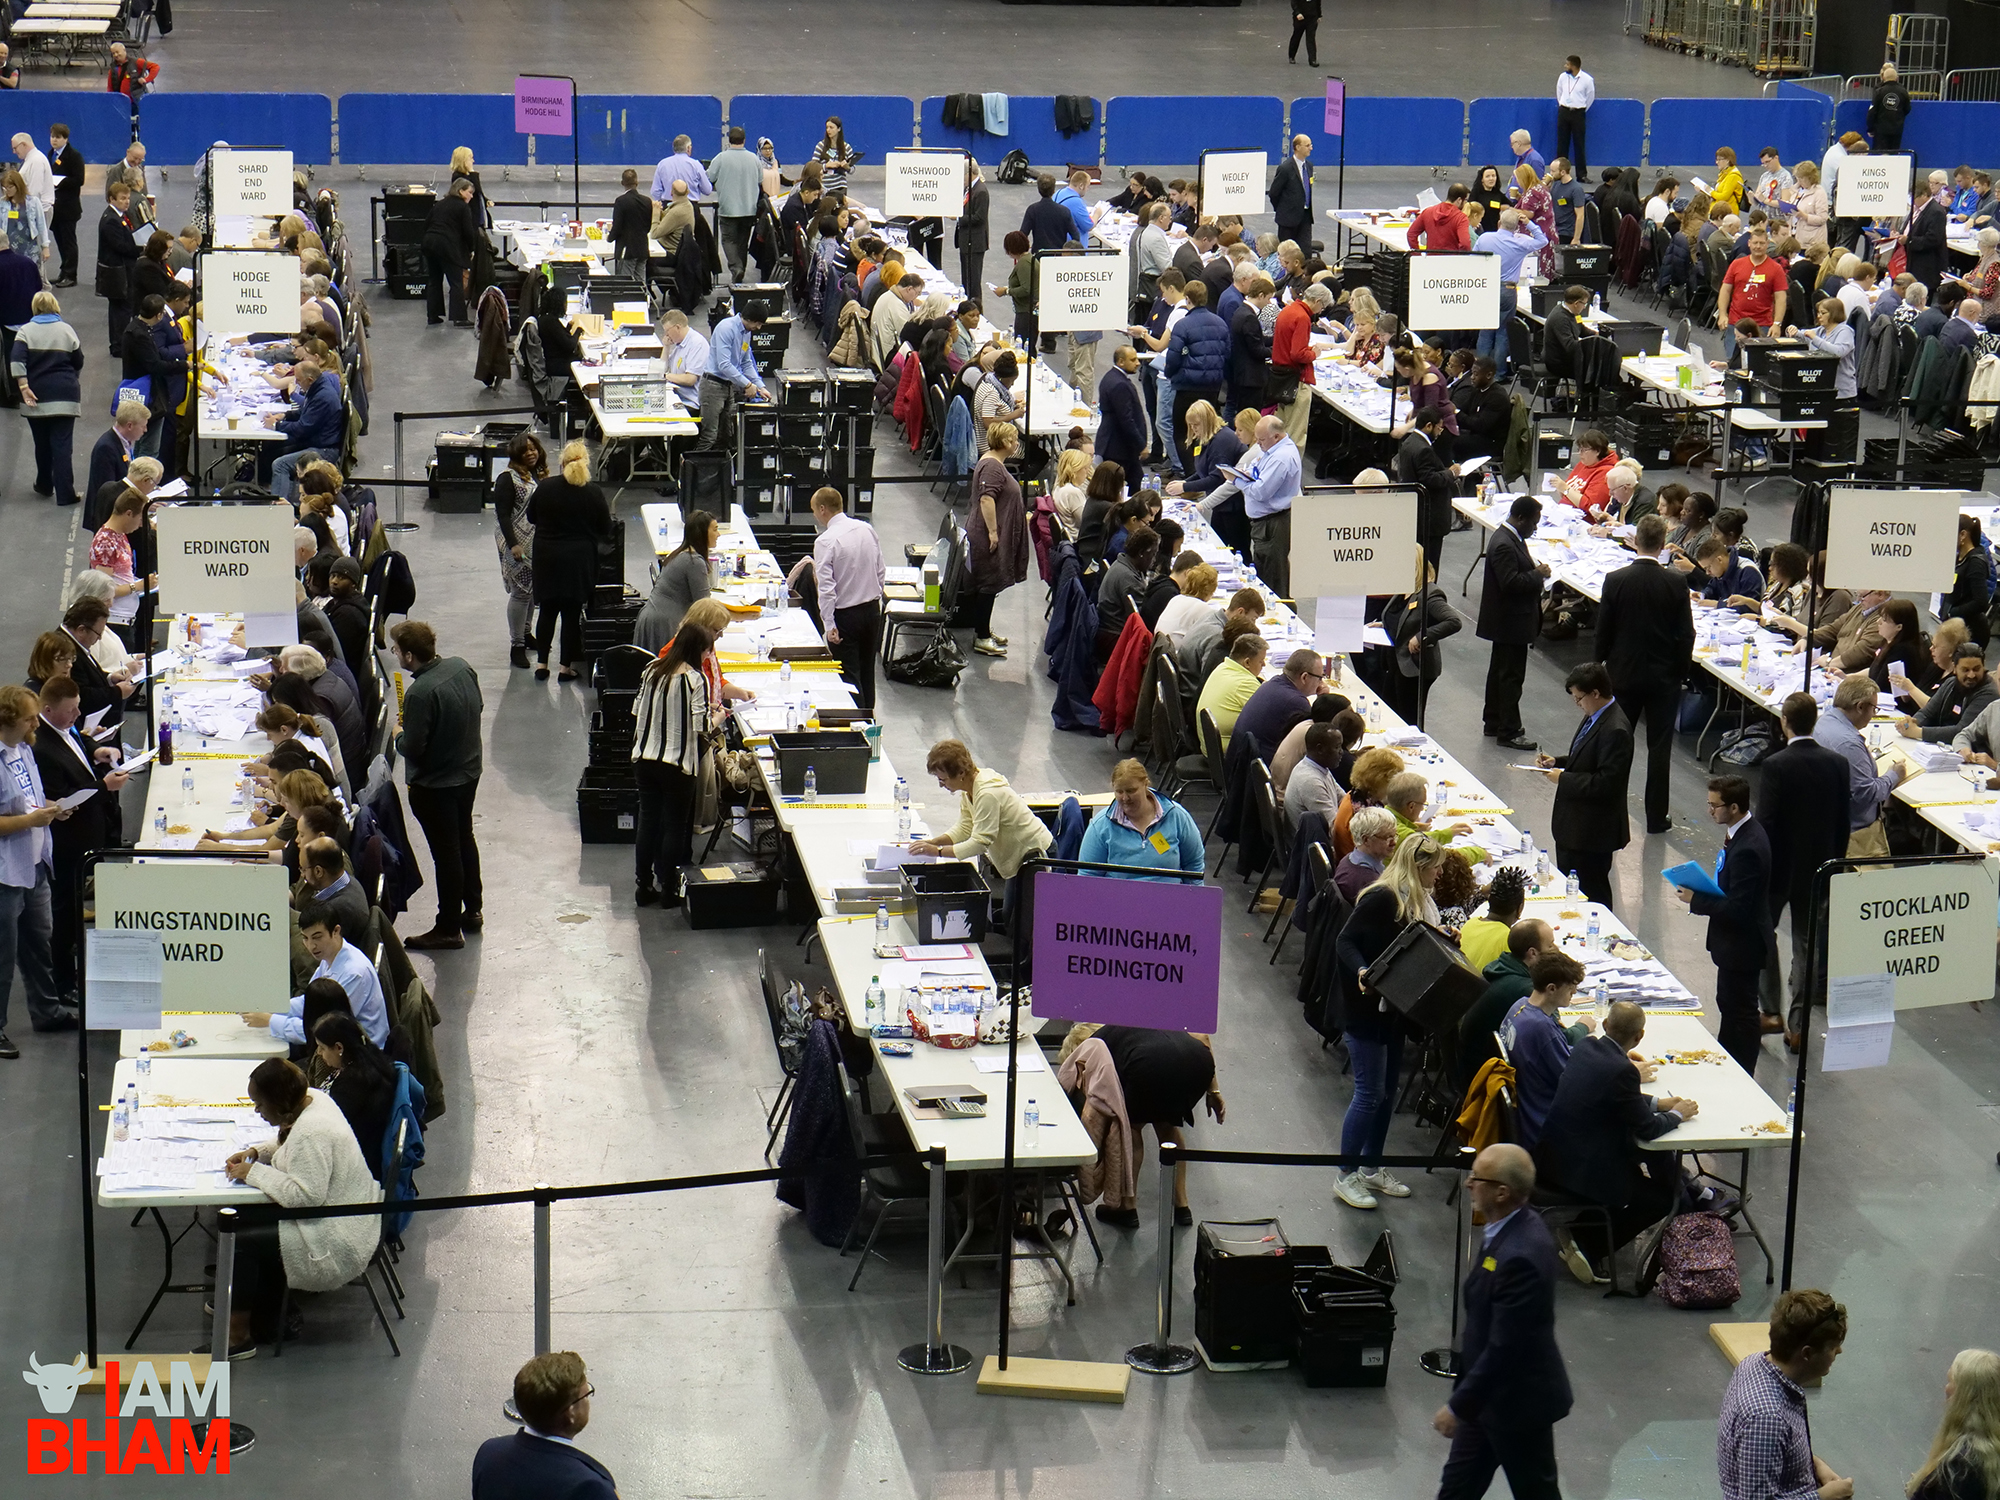 The West Midlands Mayoral Election vote count gets underway at the Barclaycard Arena in Birmingham